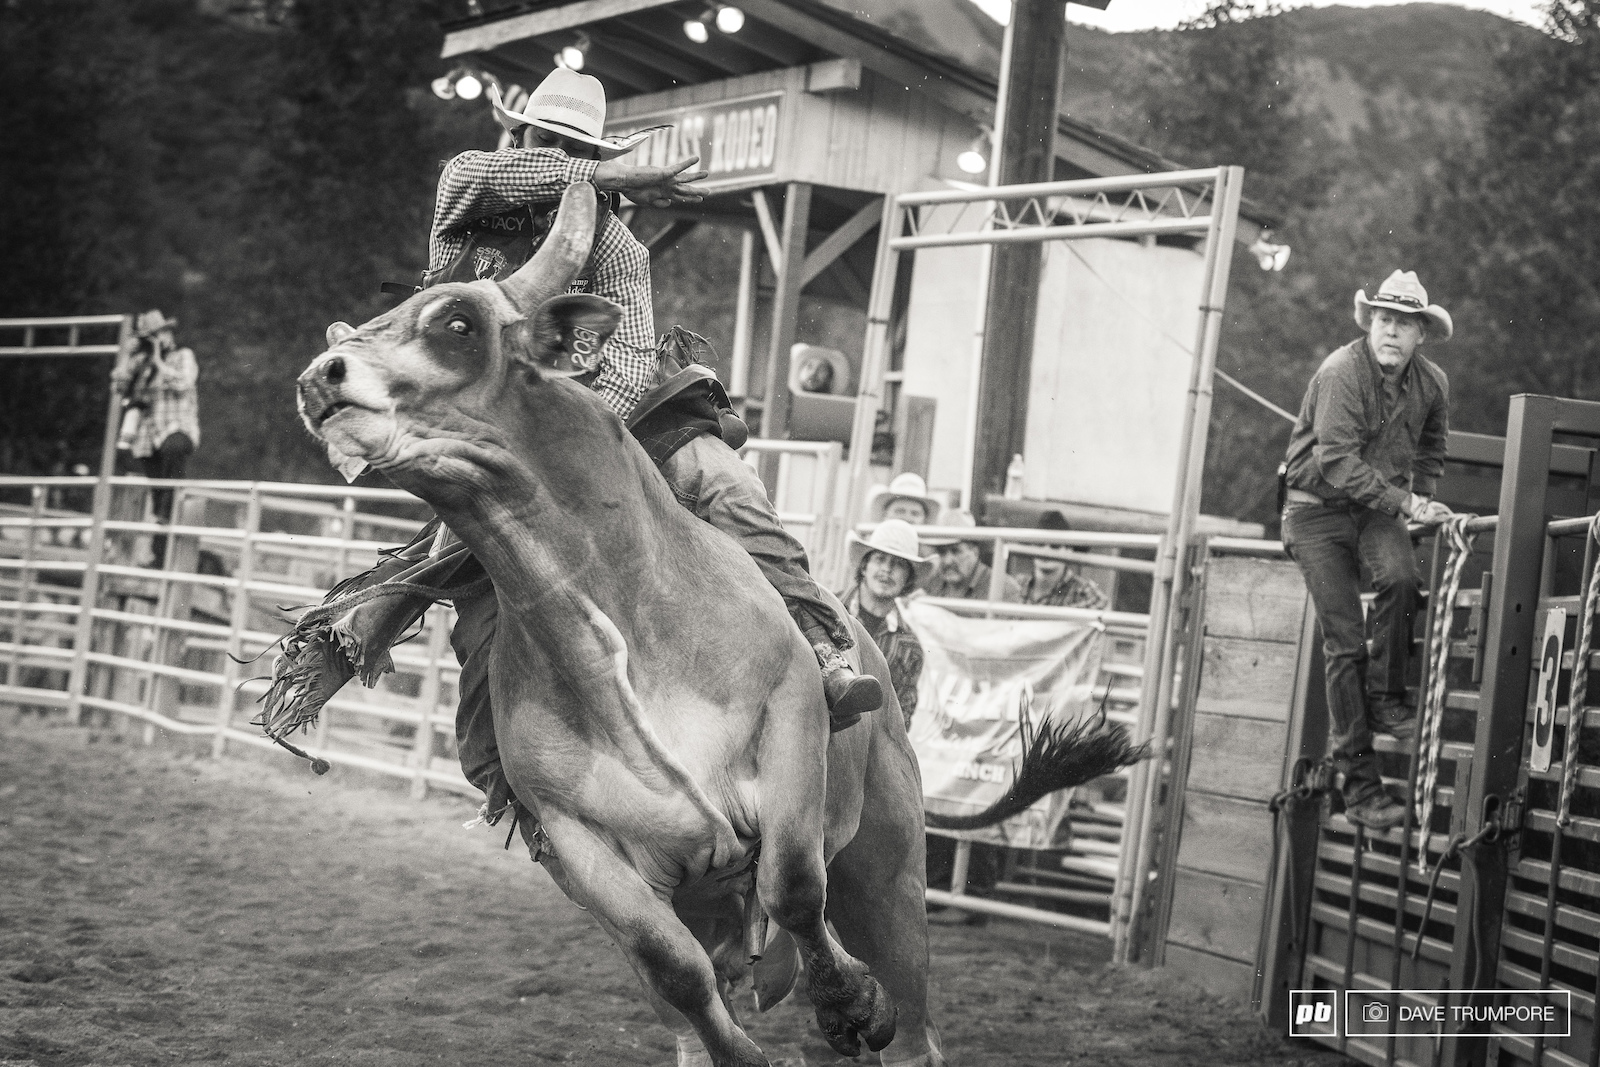 The Snowmass Rodeo held every Wednesday night in the summer is a great chance for racers to take in a little bit of what makes America s Western culture so unique.